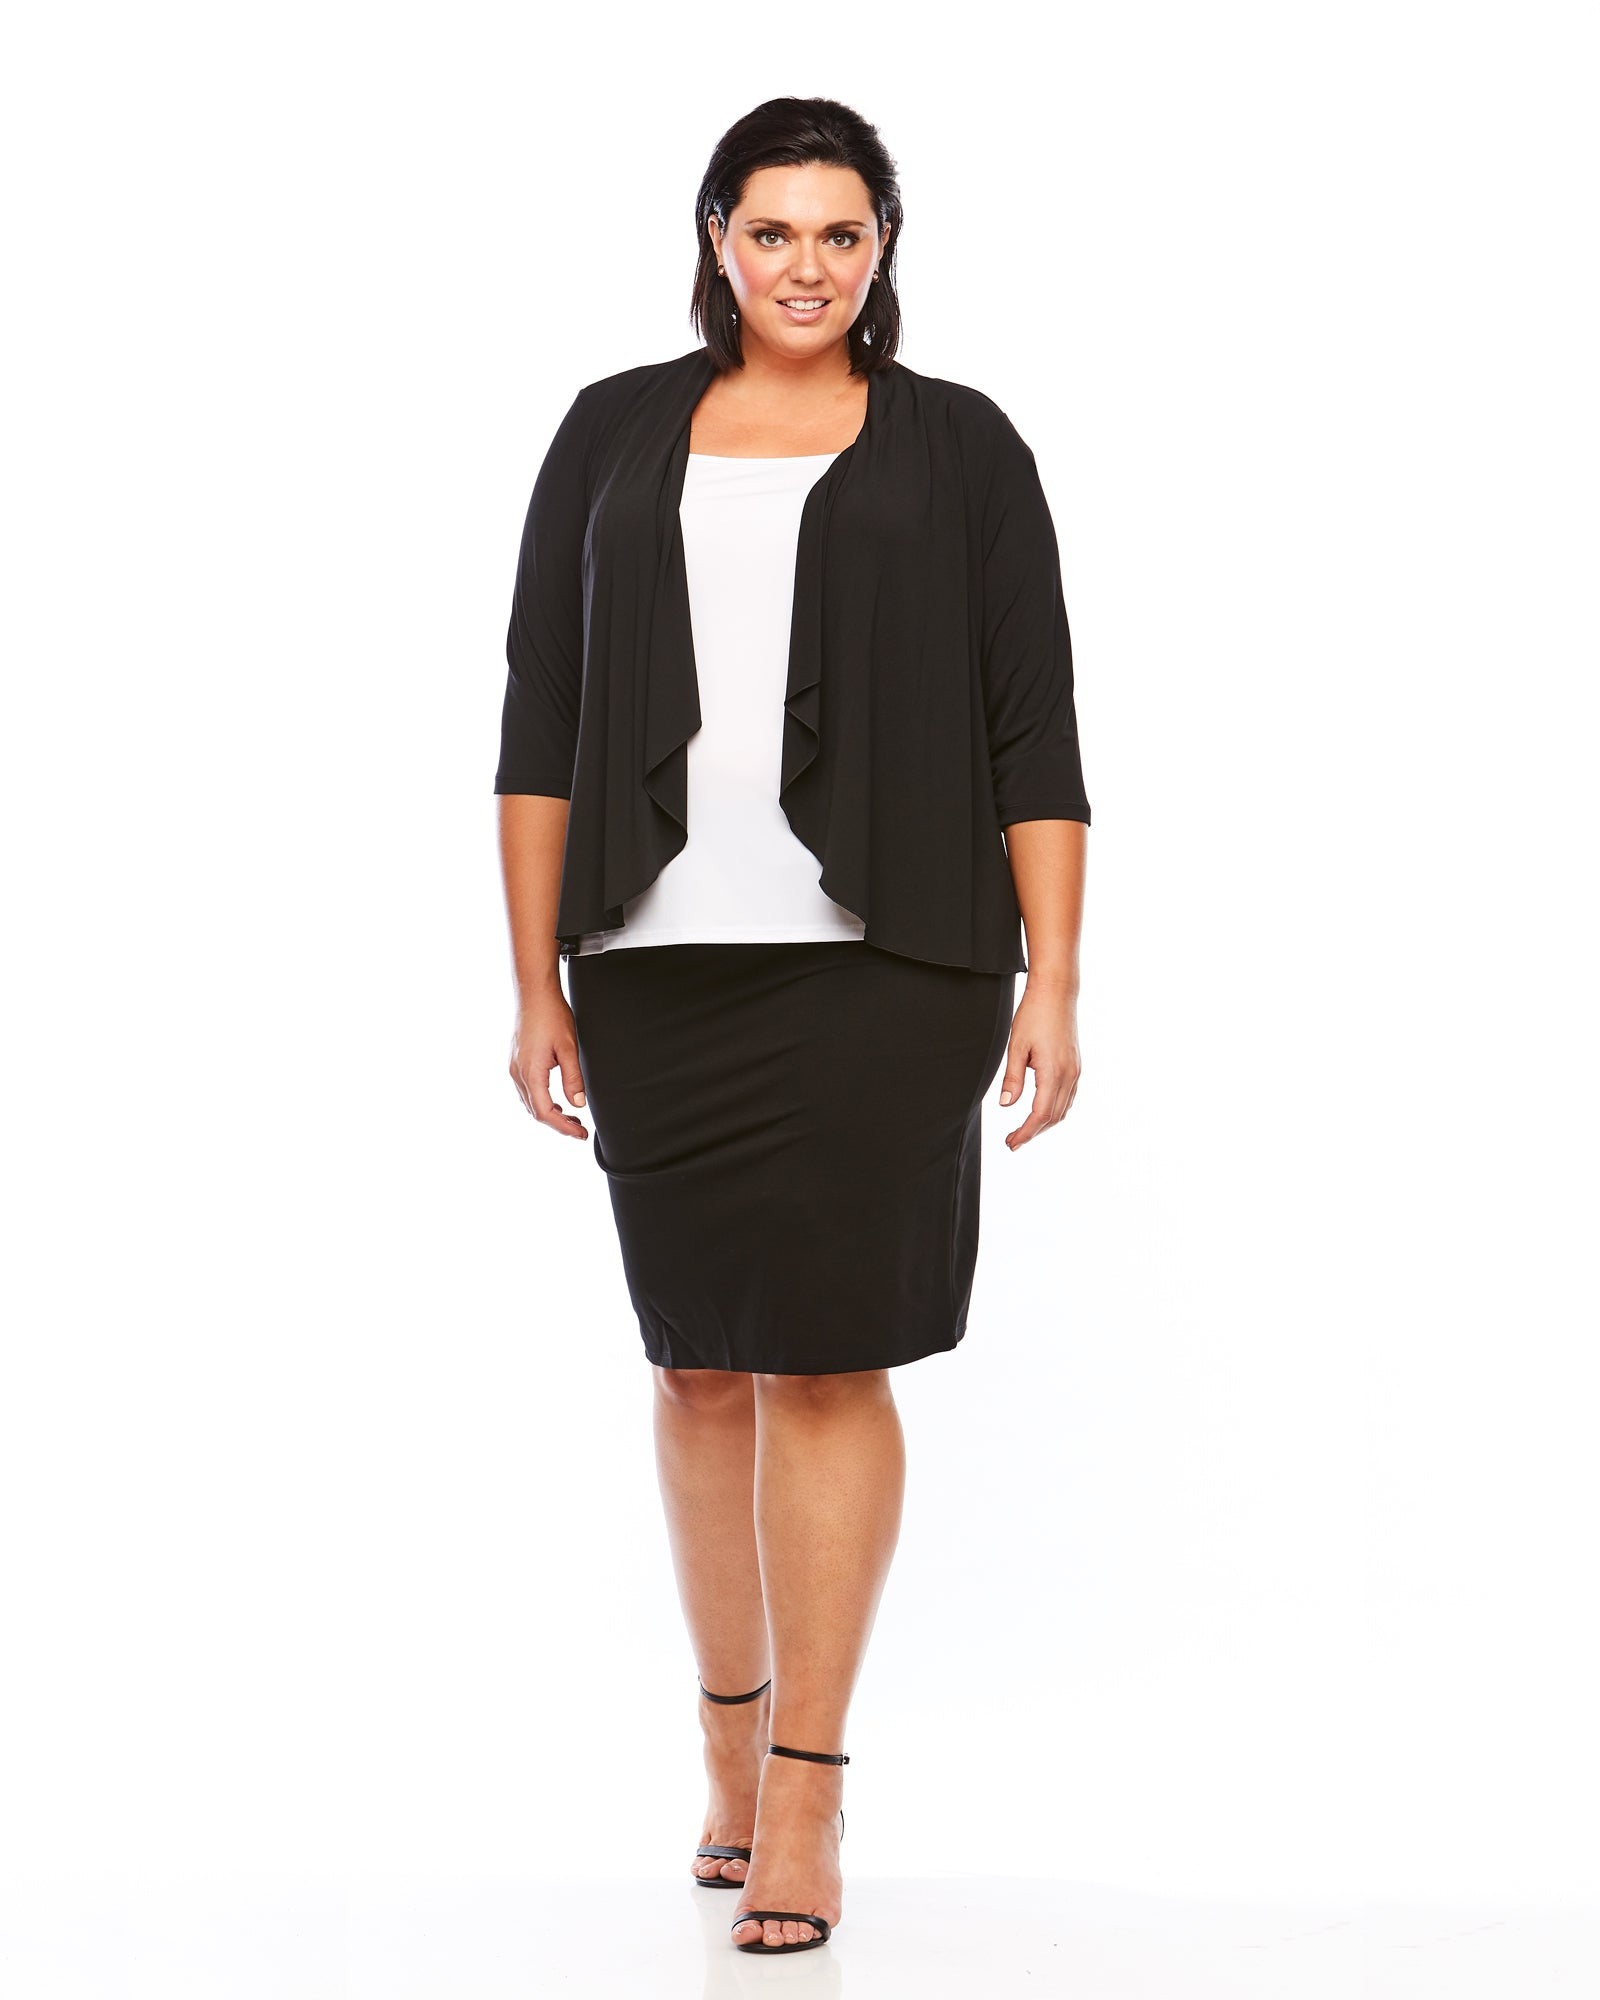 Room To Move Ponte skirt, Plus size skirt, ponte skirt, black skirt